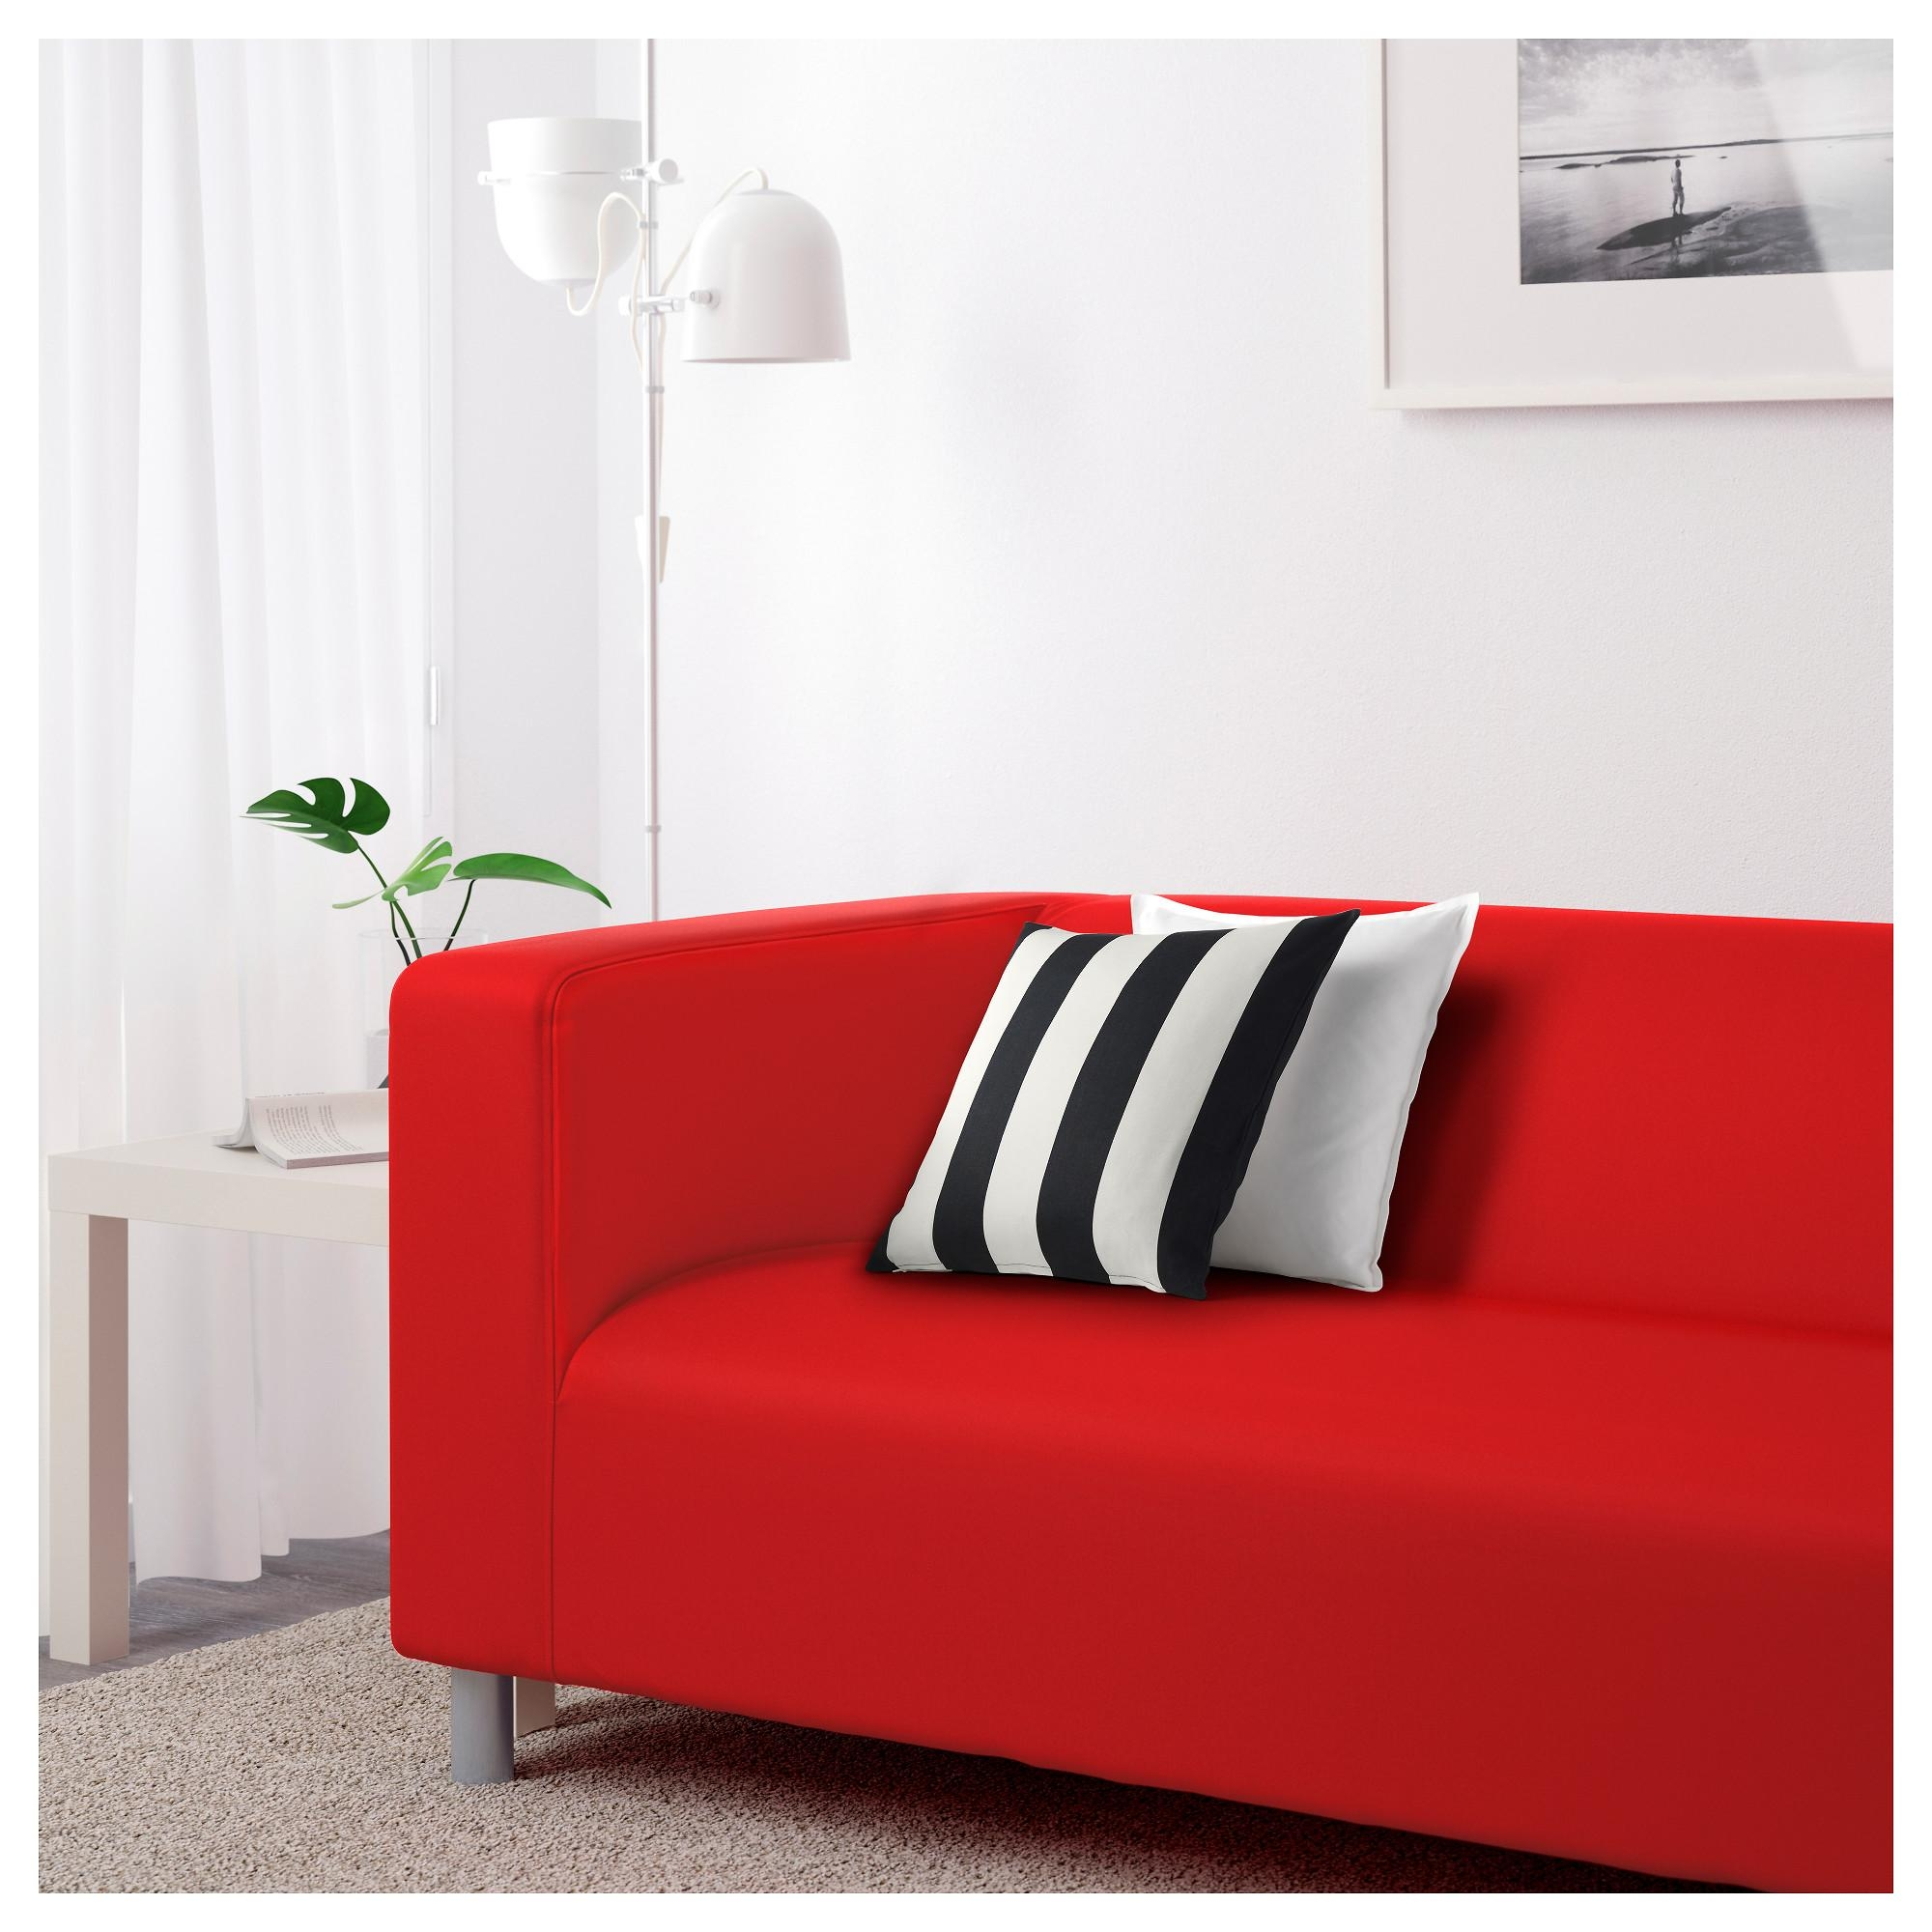 Klippan Two Seat Sofa Flackarp Red Orange – Ikea Pertaining To Orange Ikea Sofas (Image 12 of 20)